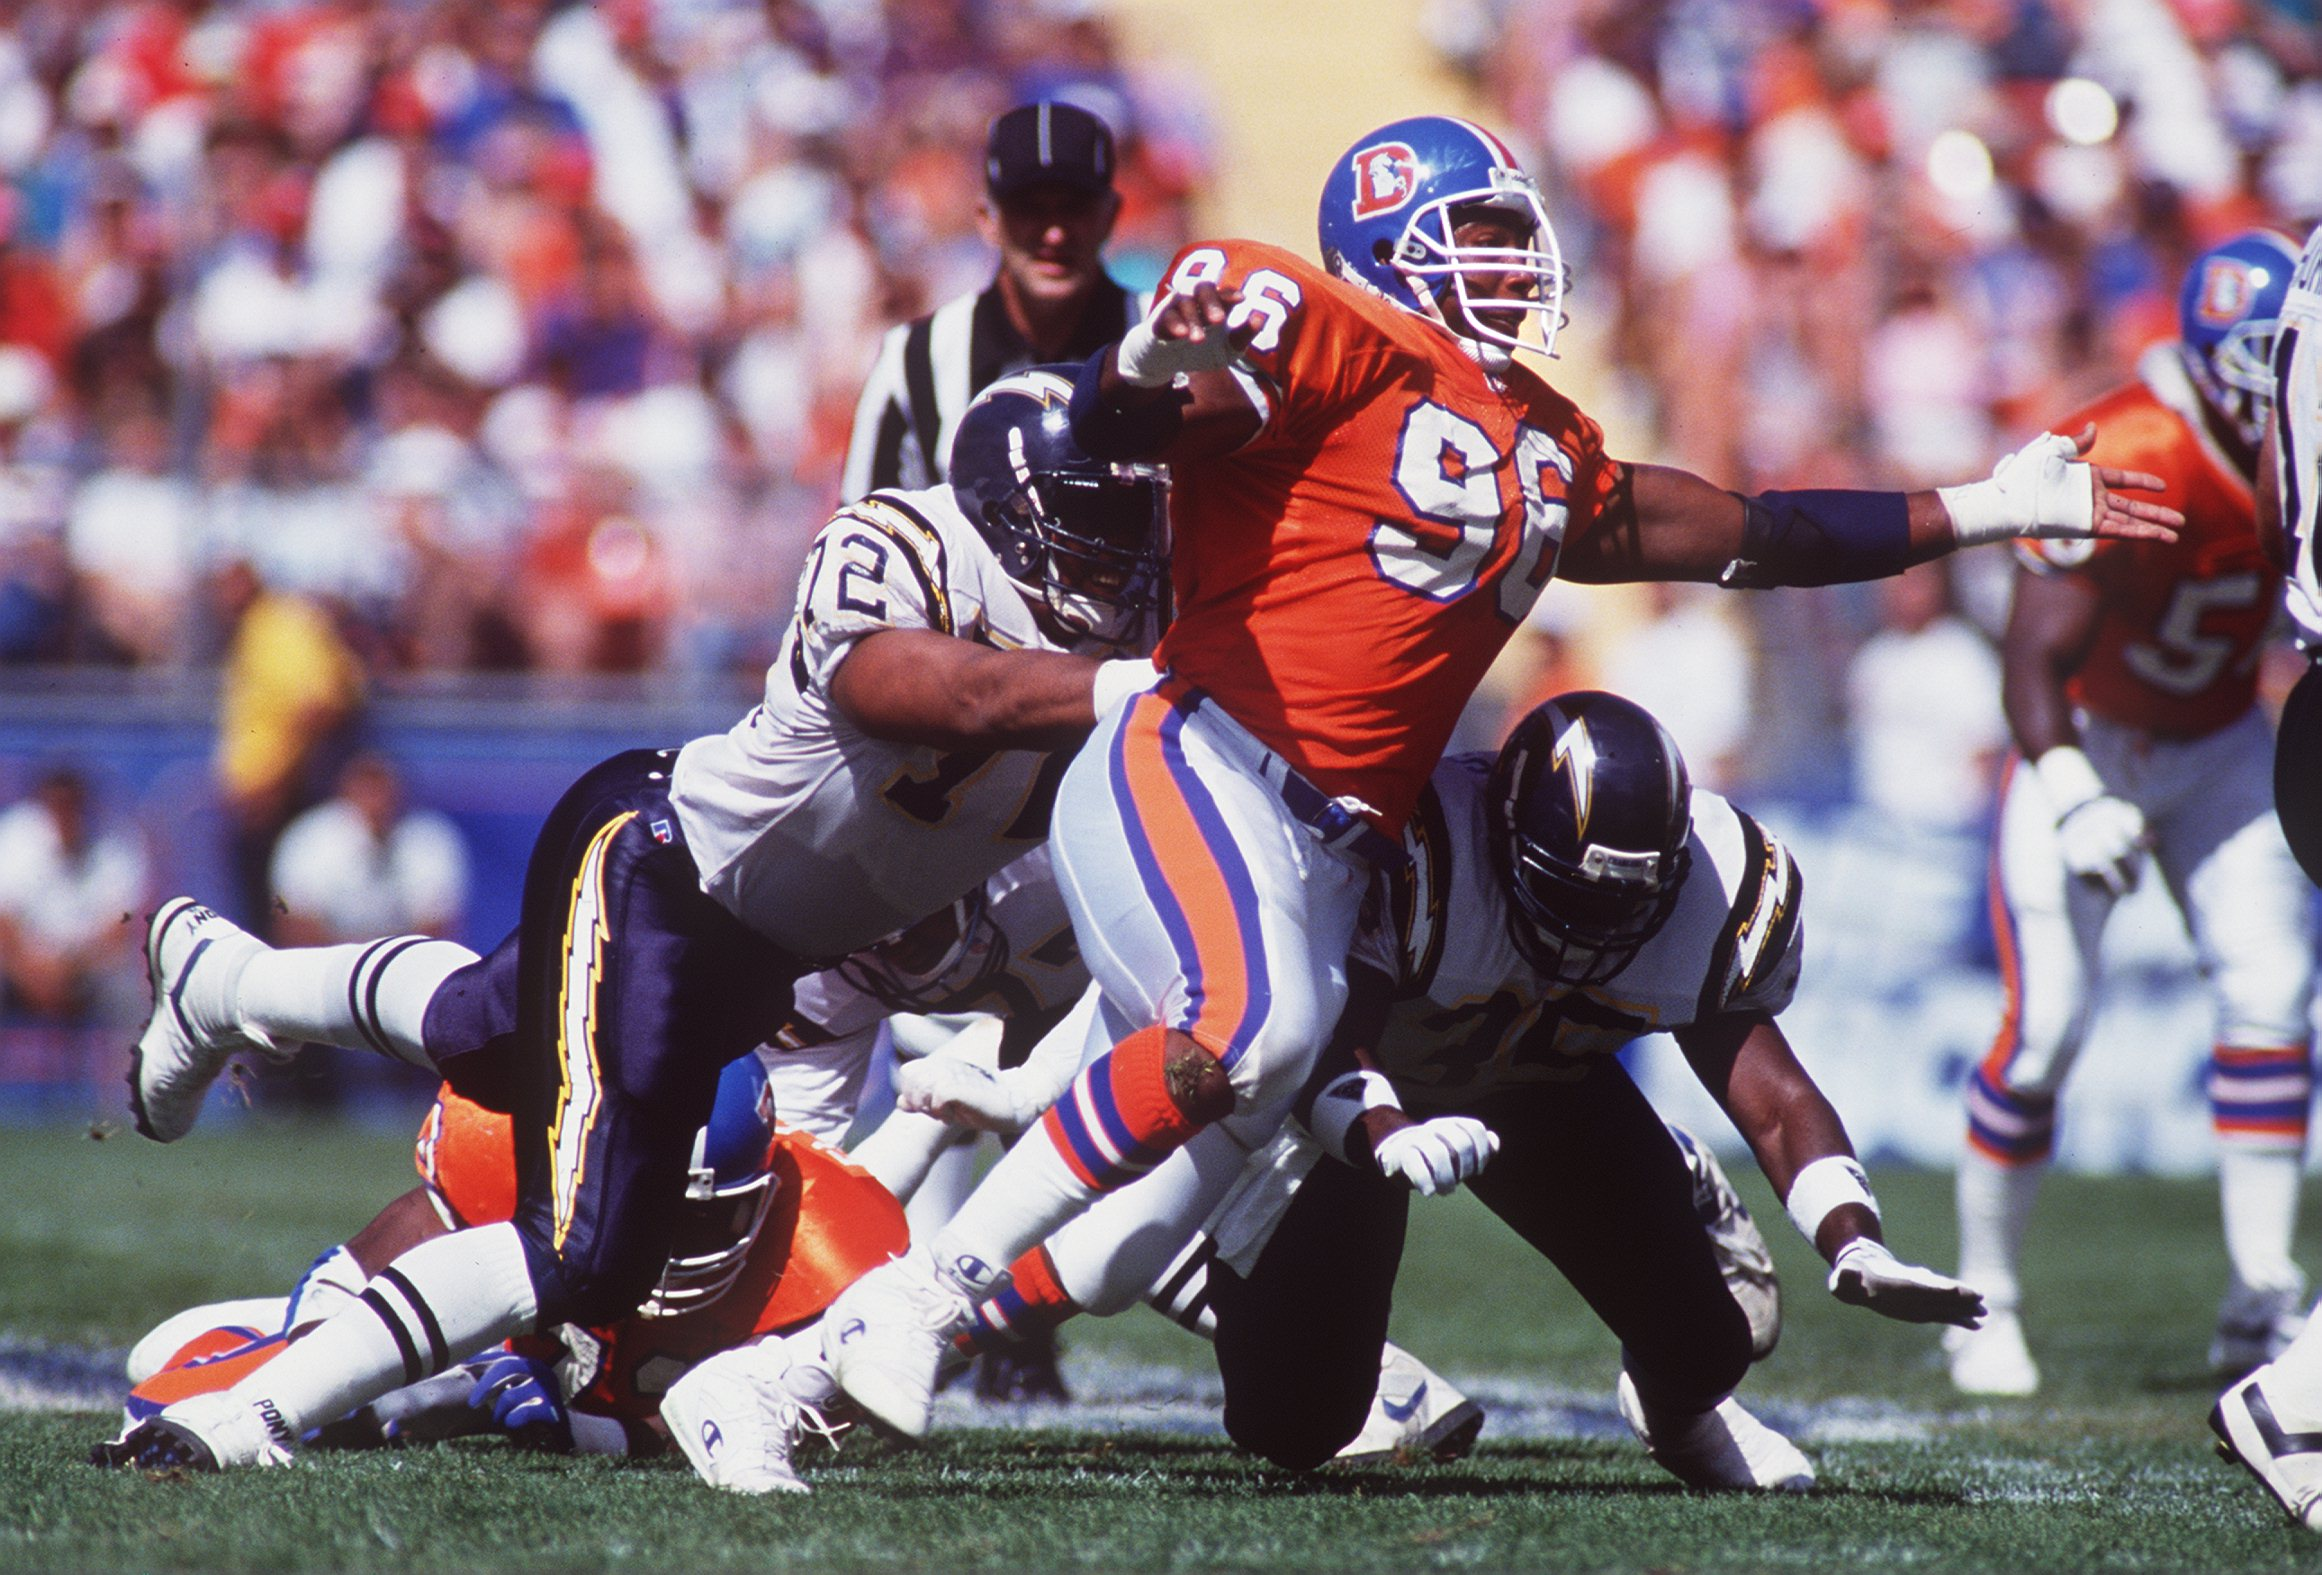 Former Denver Broncos pass-rusher Shane Dronett was on pace to become an elite sack artist before injuries interfered. Dronett tragically died at age 38.